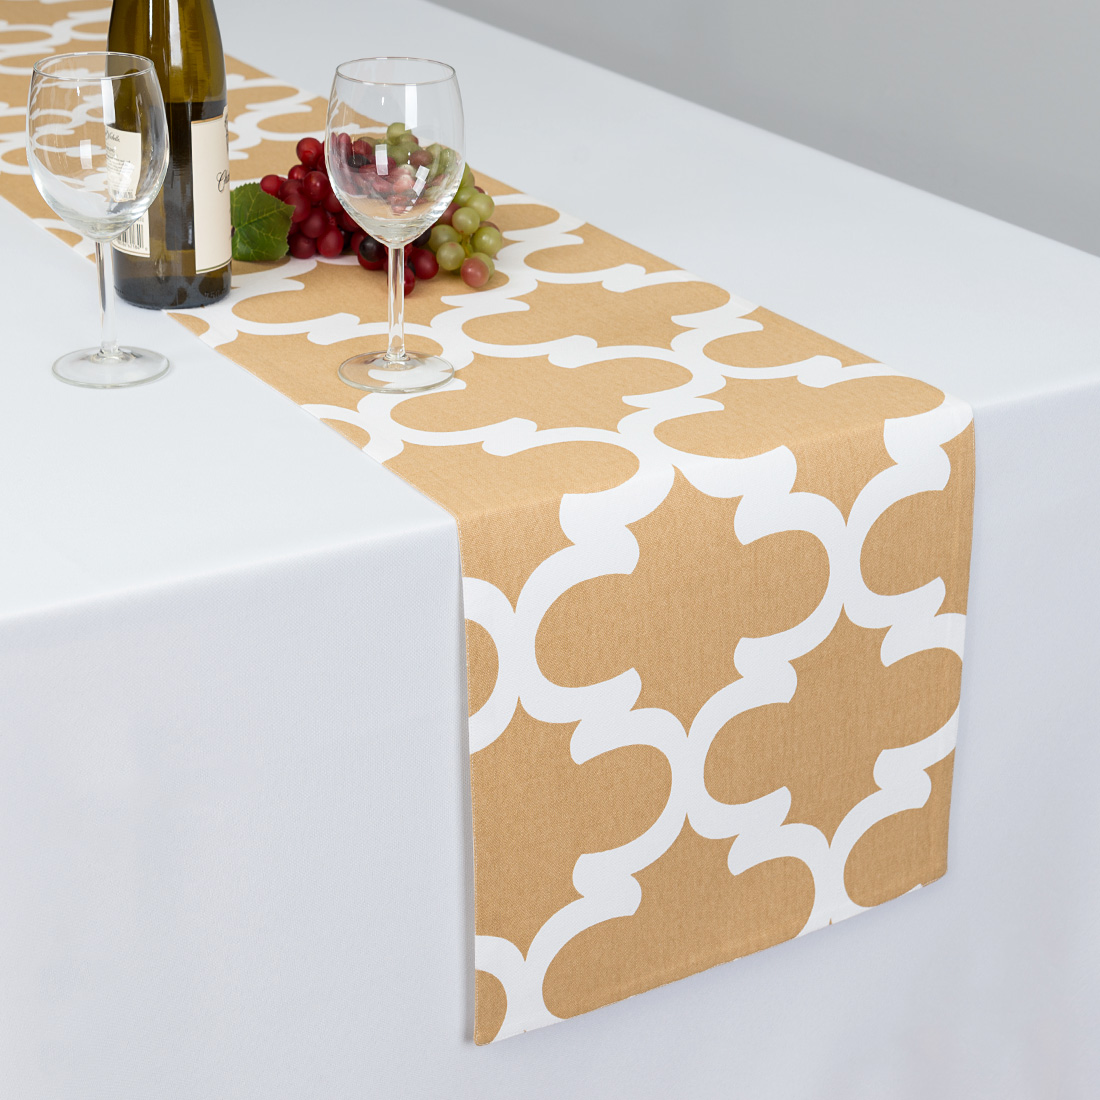 13 x 90 in. Latte & White Trellis Table Runner by